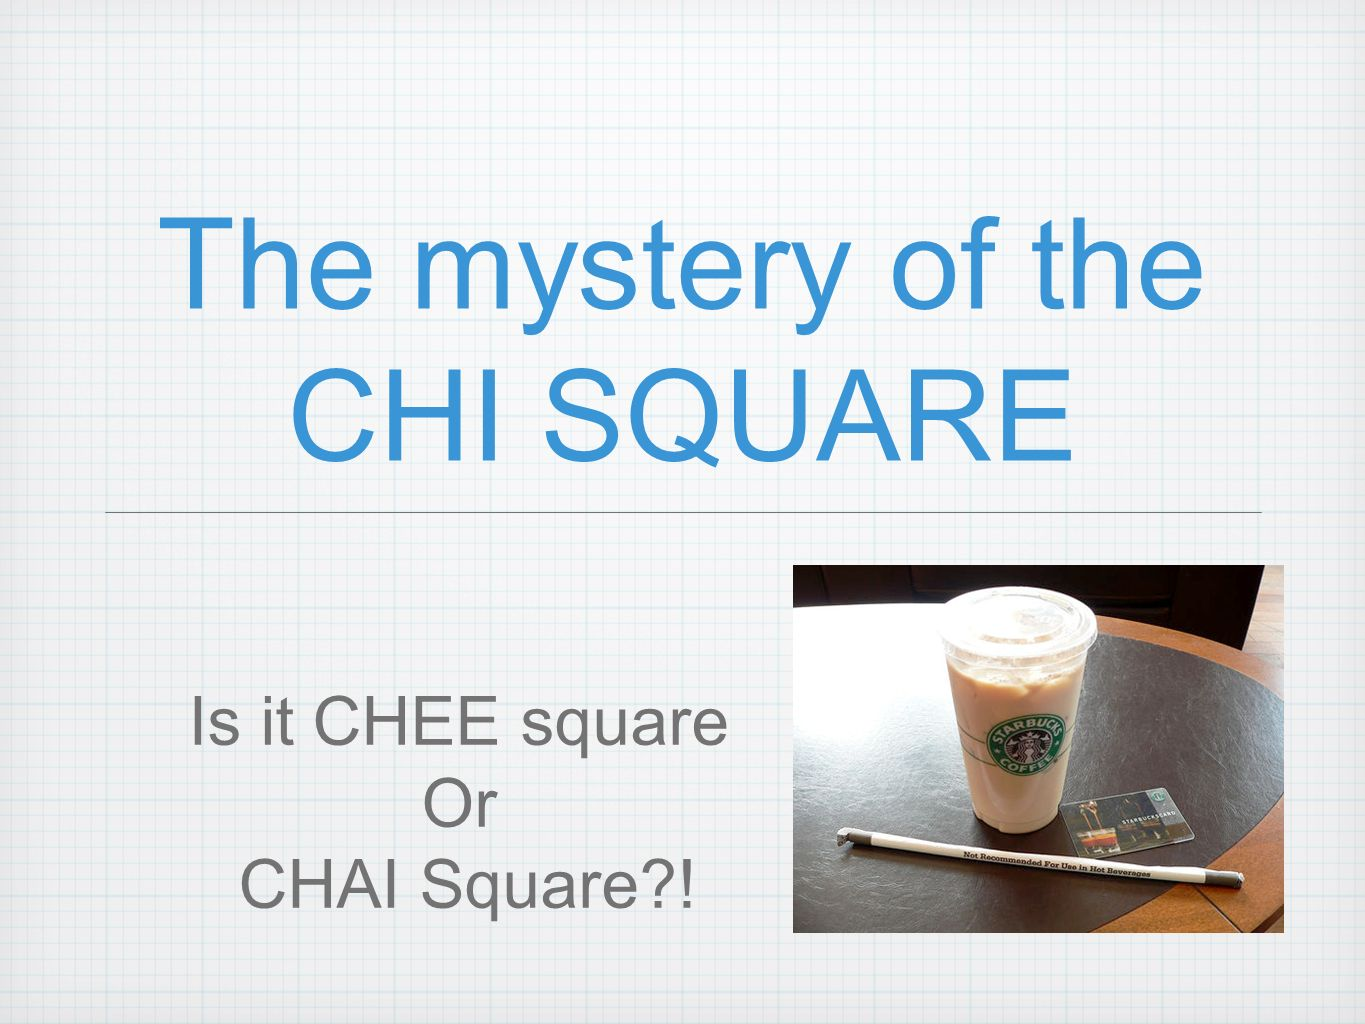 Chi Square X 2 goodness of fit There is a single test that can be applied to see if the observed sample distribution is significantly different in some way from the hypothesized population distribution